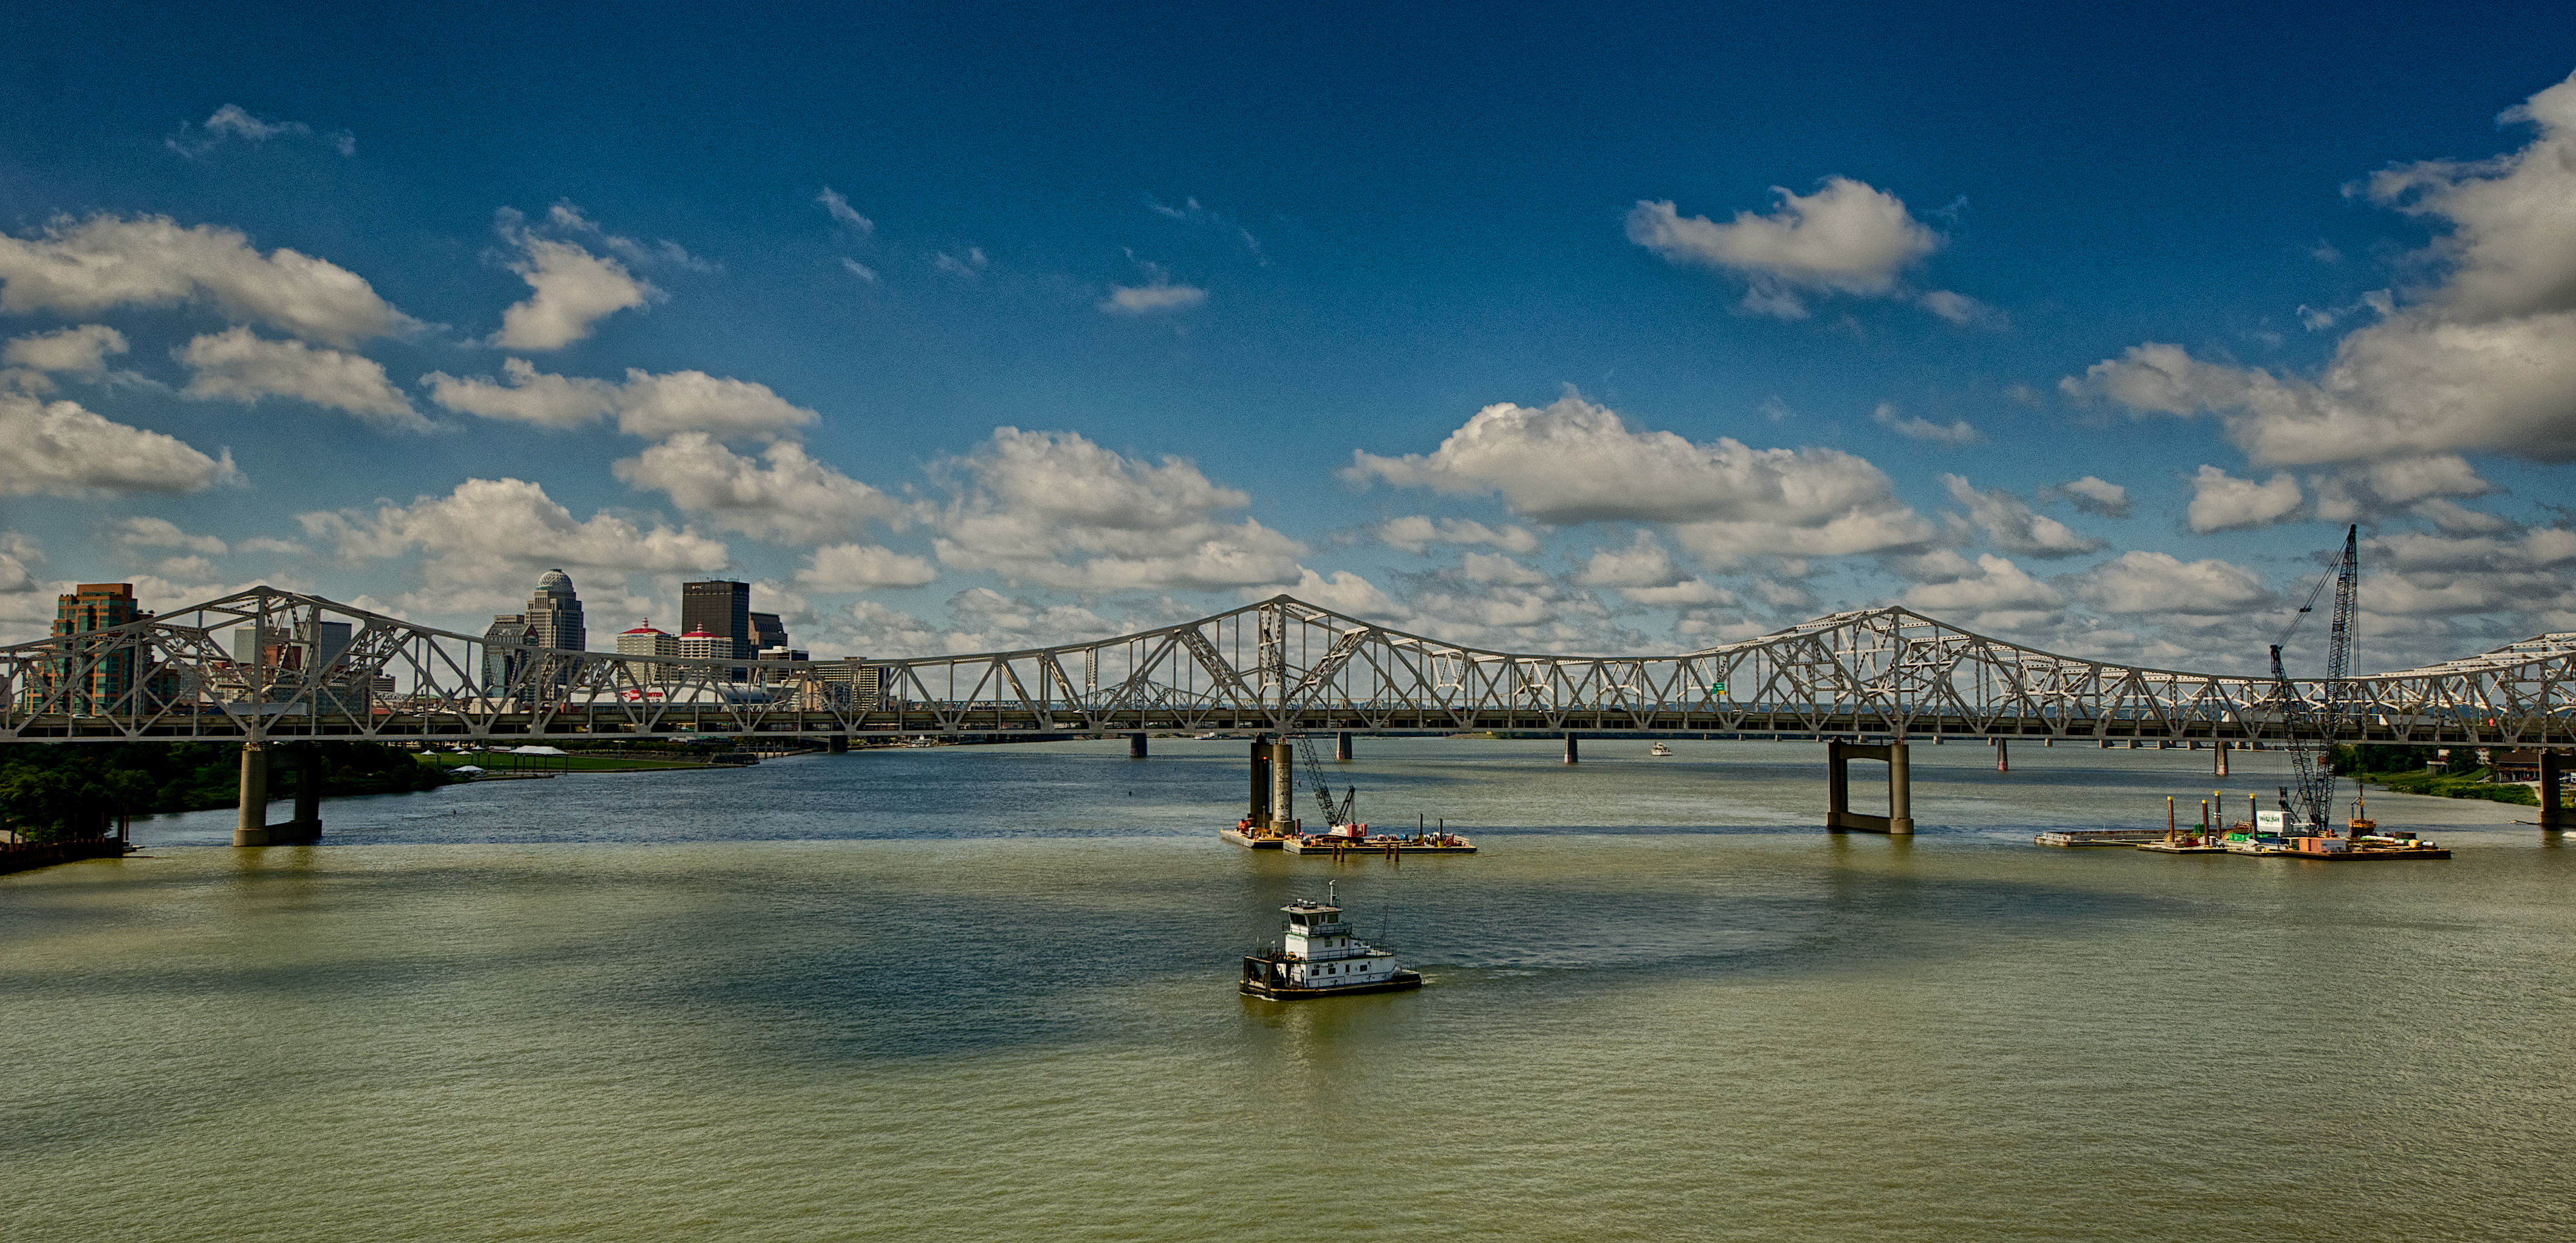 Saturday on the Ohio River Bridges Project